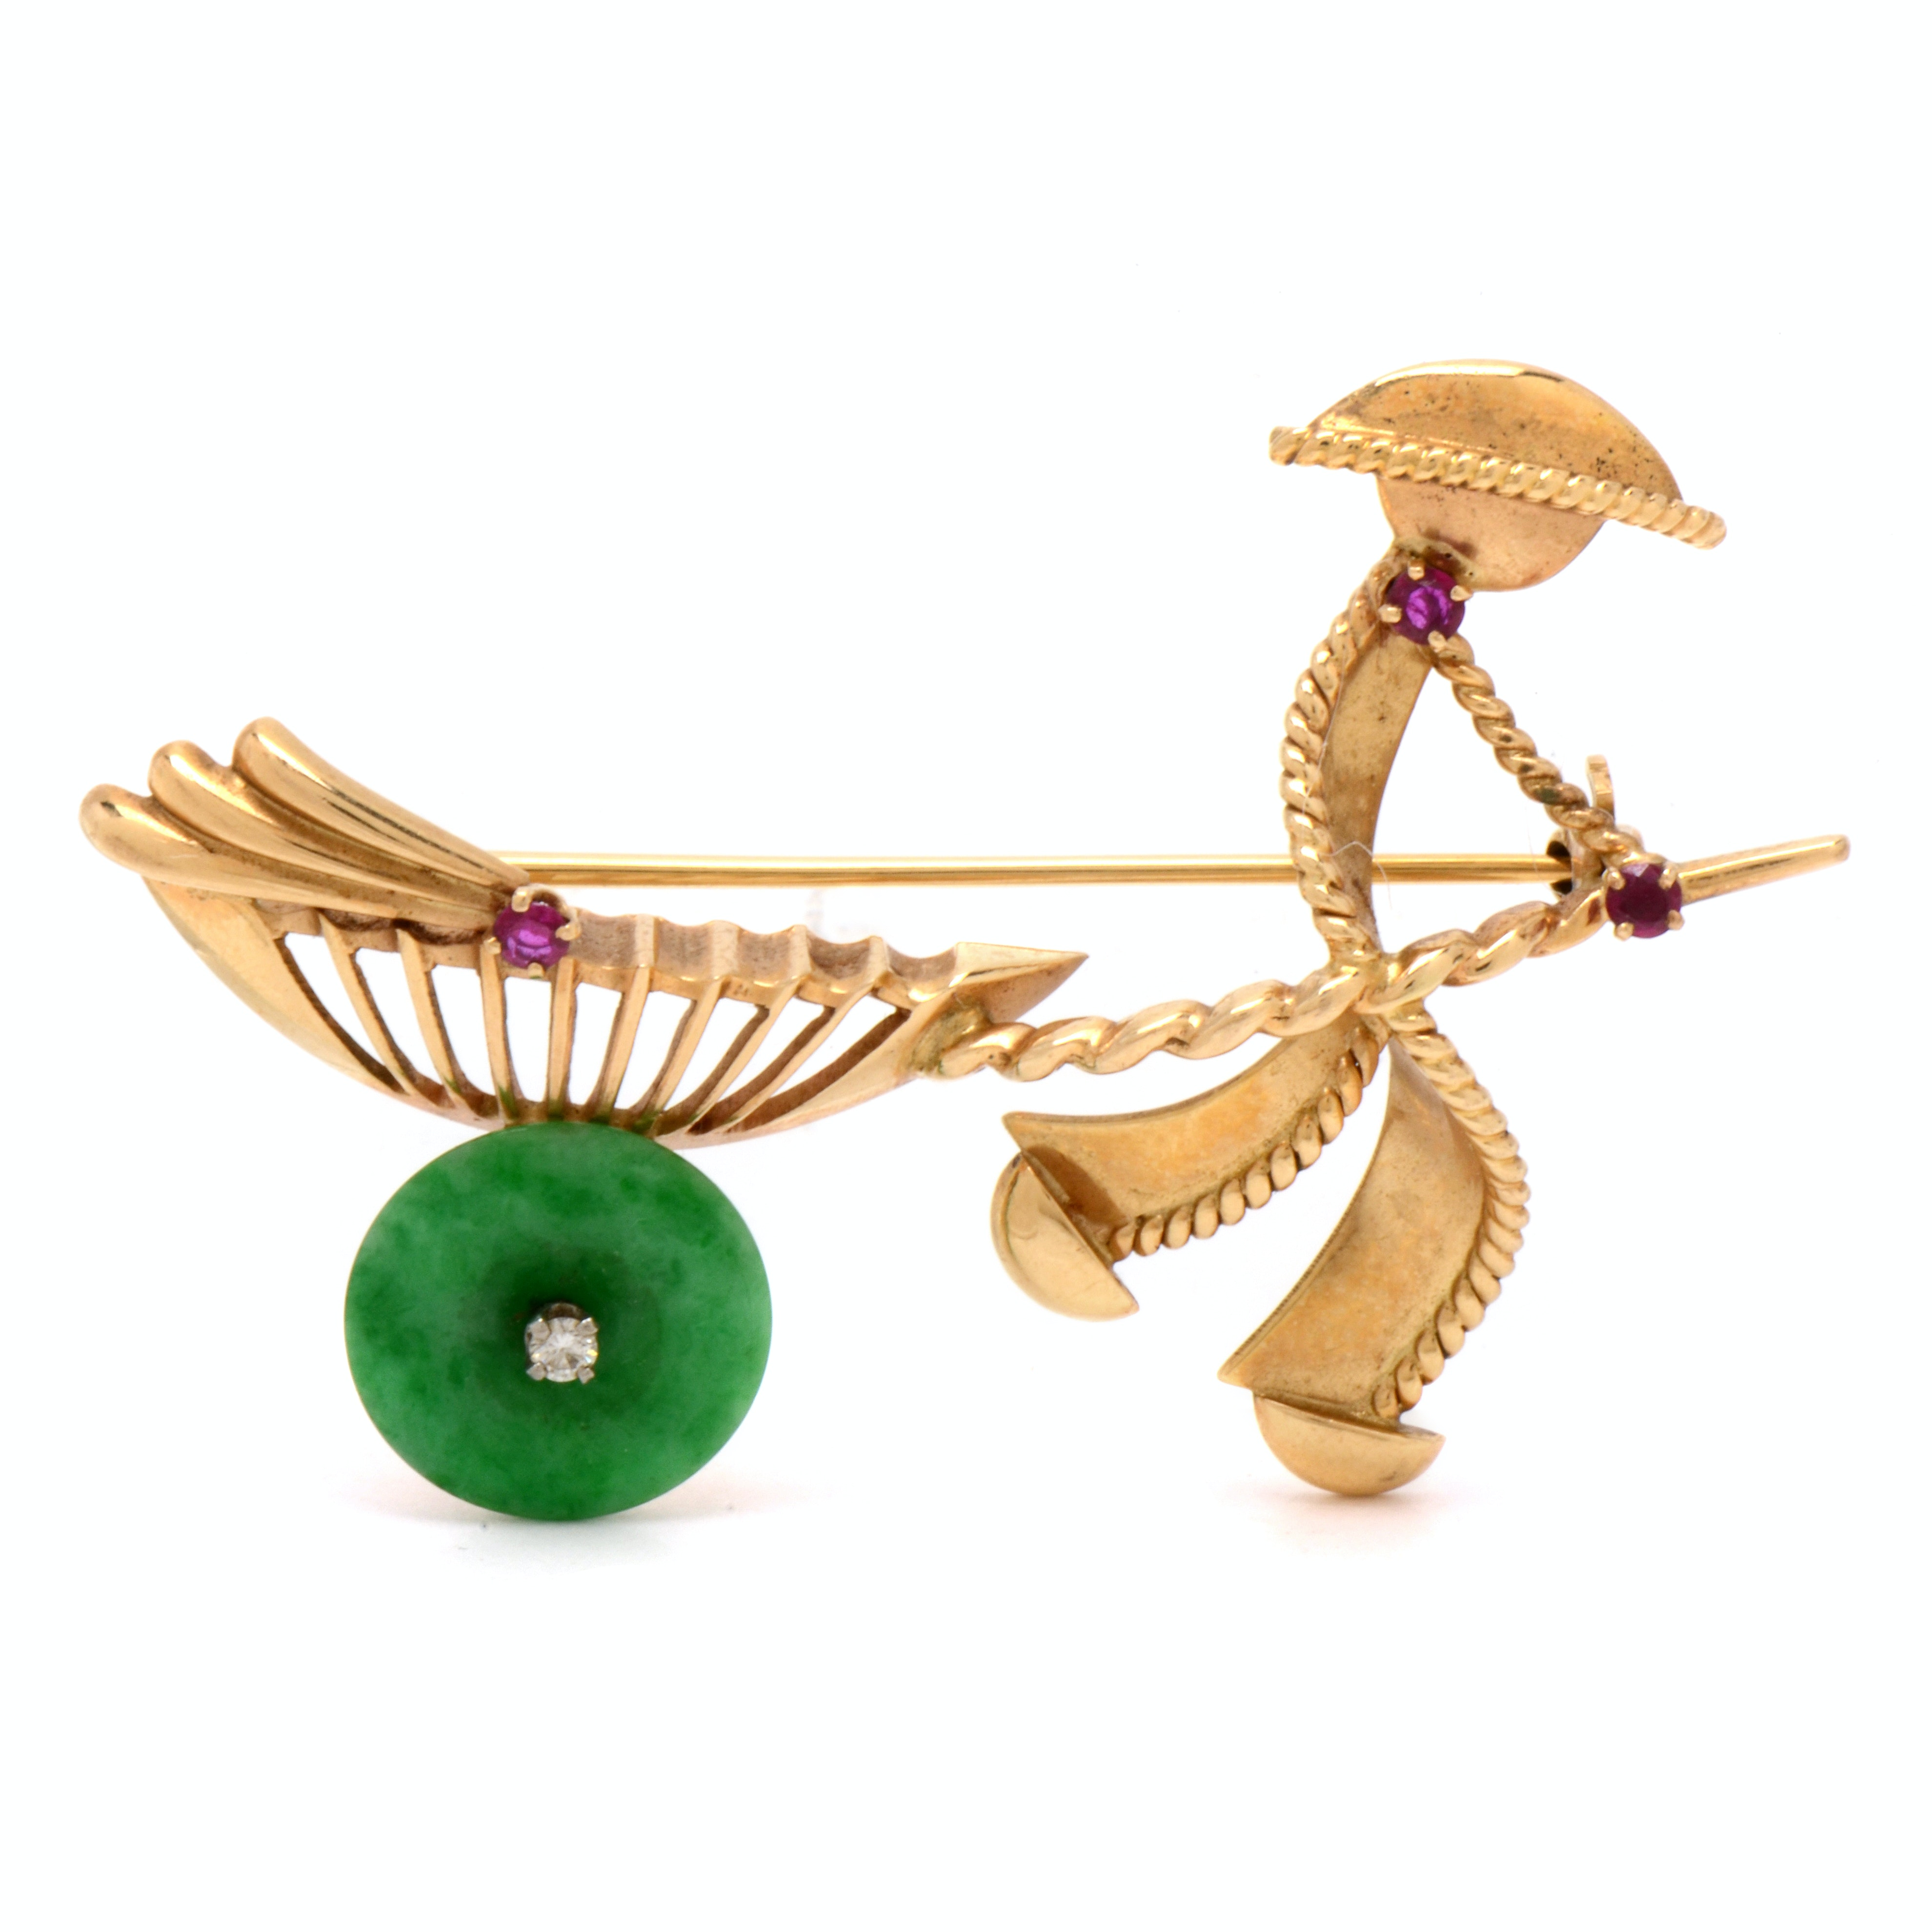 14K Yellow Gold Figural Brooch with Stone Embellishments